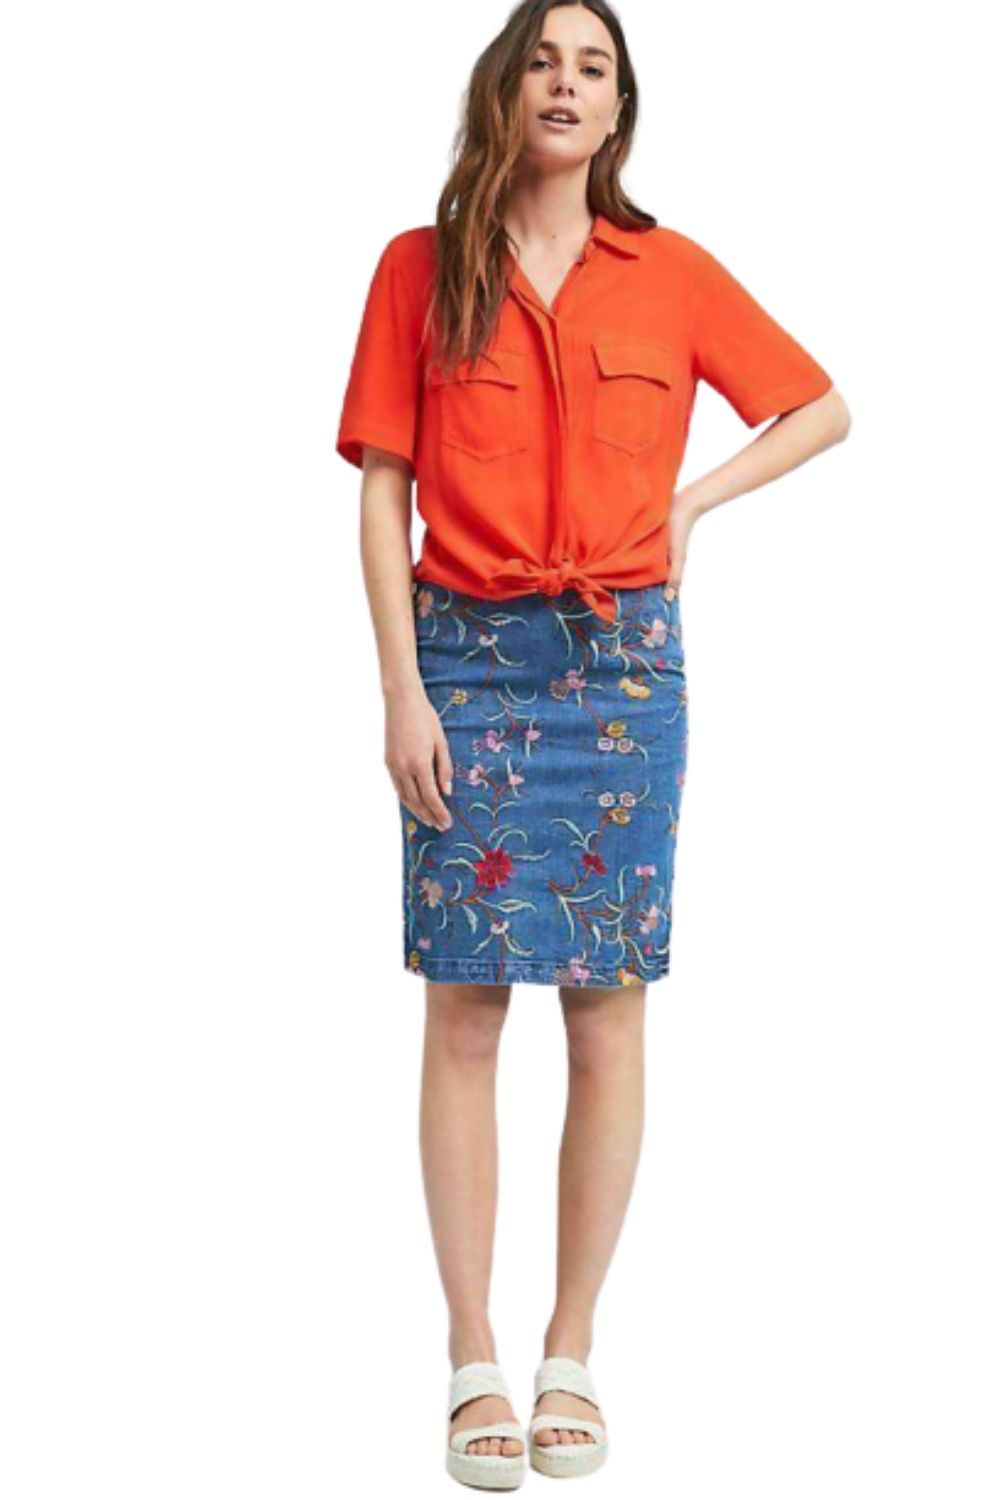 Anthropologie Women's Maeve Floral Embroidered Denim Blue Pencil Skirt - 0